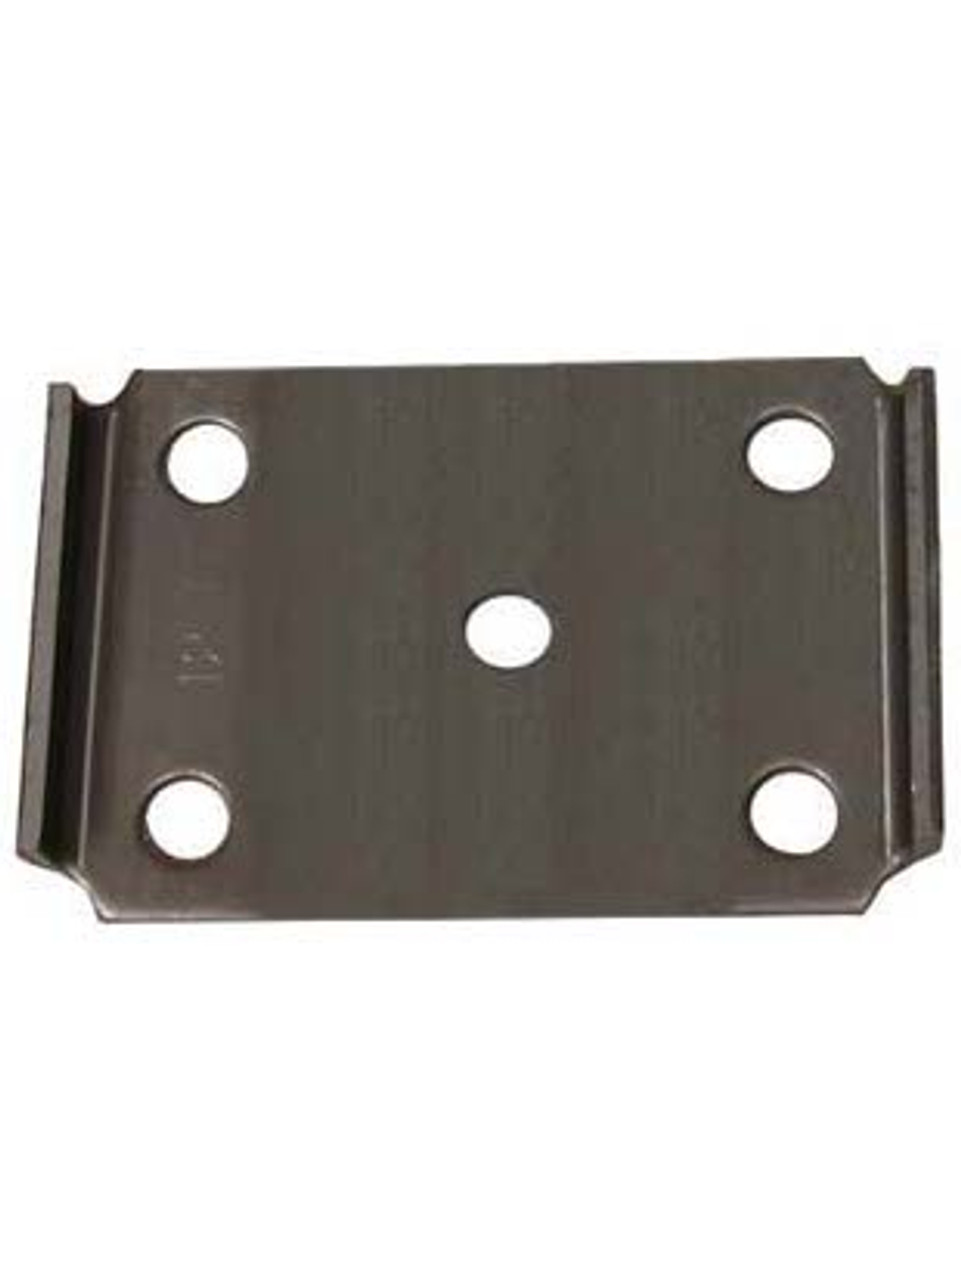 "AP238134 --- Axle Plate for 1-3/4"" Wide Springs & 2-3/8"" Round Axles"